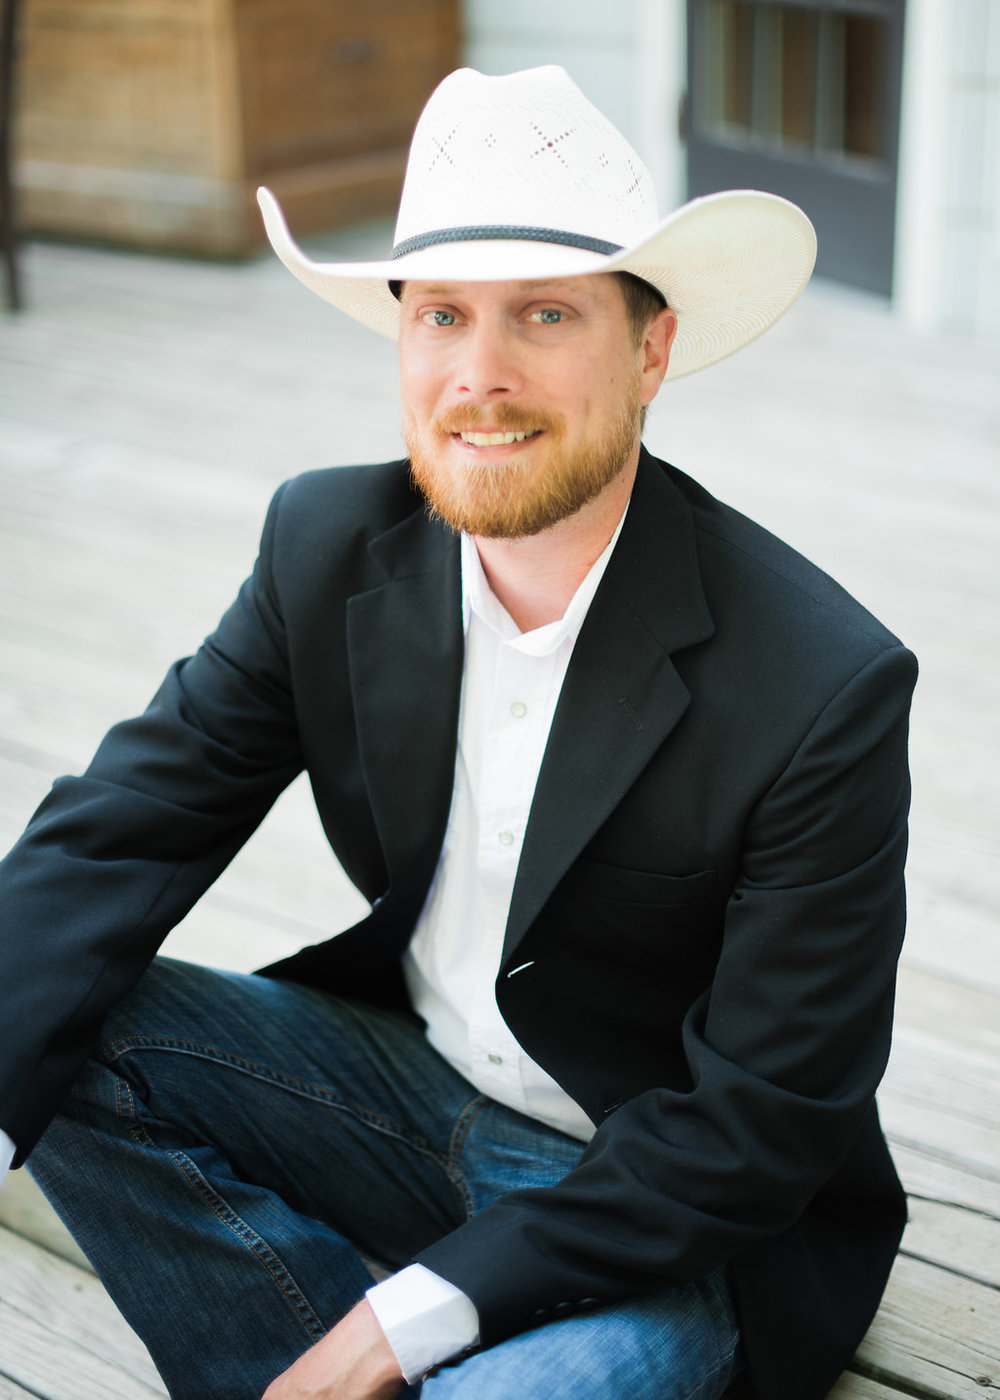 Traeger Fuhrmann     Realtor/Associate  (830) 992-0374   Traeger@reataranchrealty.com   Traeger is a fourth generation native of Fredericksburg. He was raised on his family's ranch which is registered in the Texas Family Land Heritage Program  ....Meet Traeger